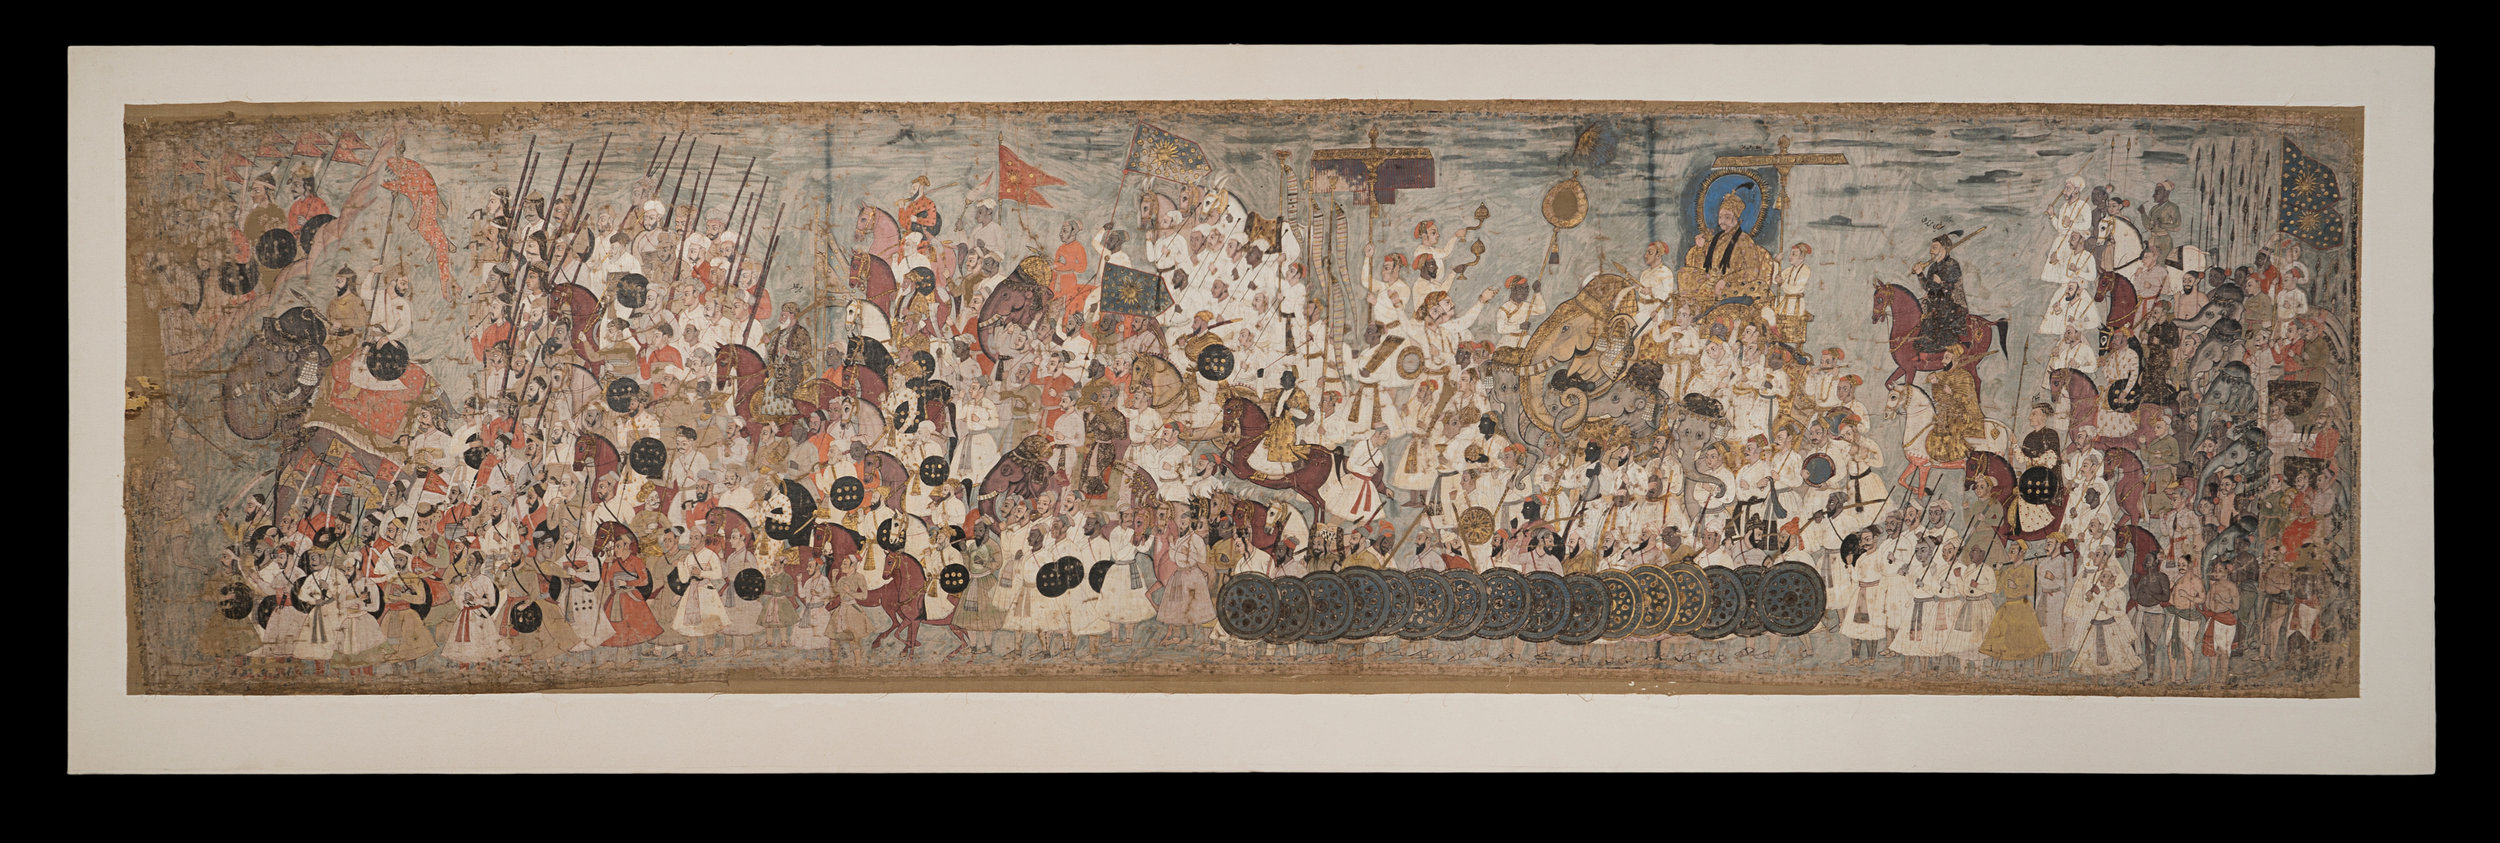 Procession of Abdullah Qutb Shah - Painting on clothAbout AD 1650Golconda, IndiaSir Akbar Hydari CollectionCSMVS, MumbaiThis painting depicts the military procession of the Golconda court of Abdullah Qutb Shah (reigned 1626–72) in the Deccan in south India. This is a public display of pomp and pageantry, with bearers of flags, incense-burners, and soldiers – some holding swords, some with lances and others with guns. Abdullah Qutb Shah famously surrendered his empire to the Mughals in 1636, rendering all this military pageantry slightly ironic.